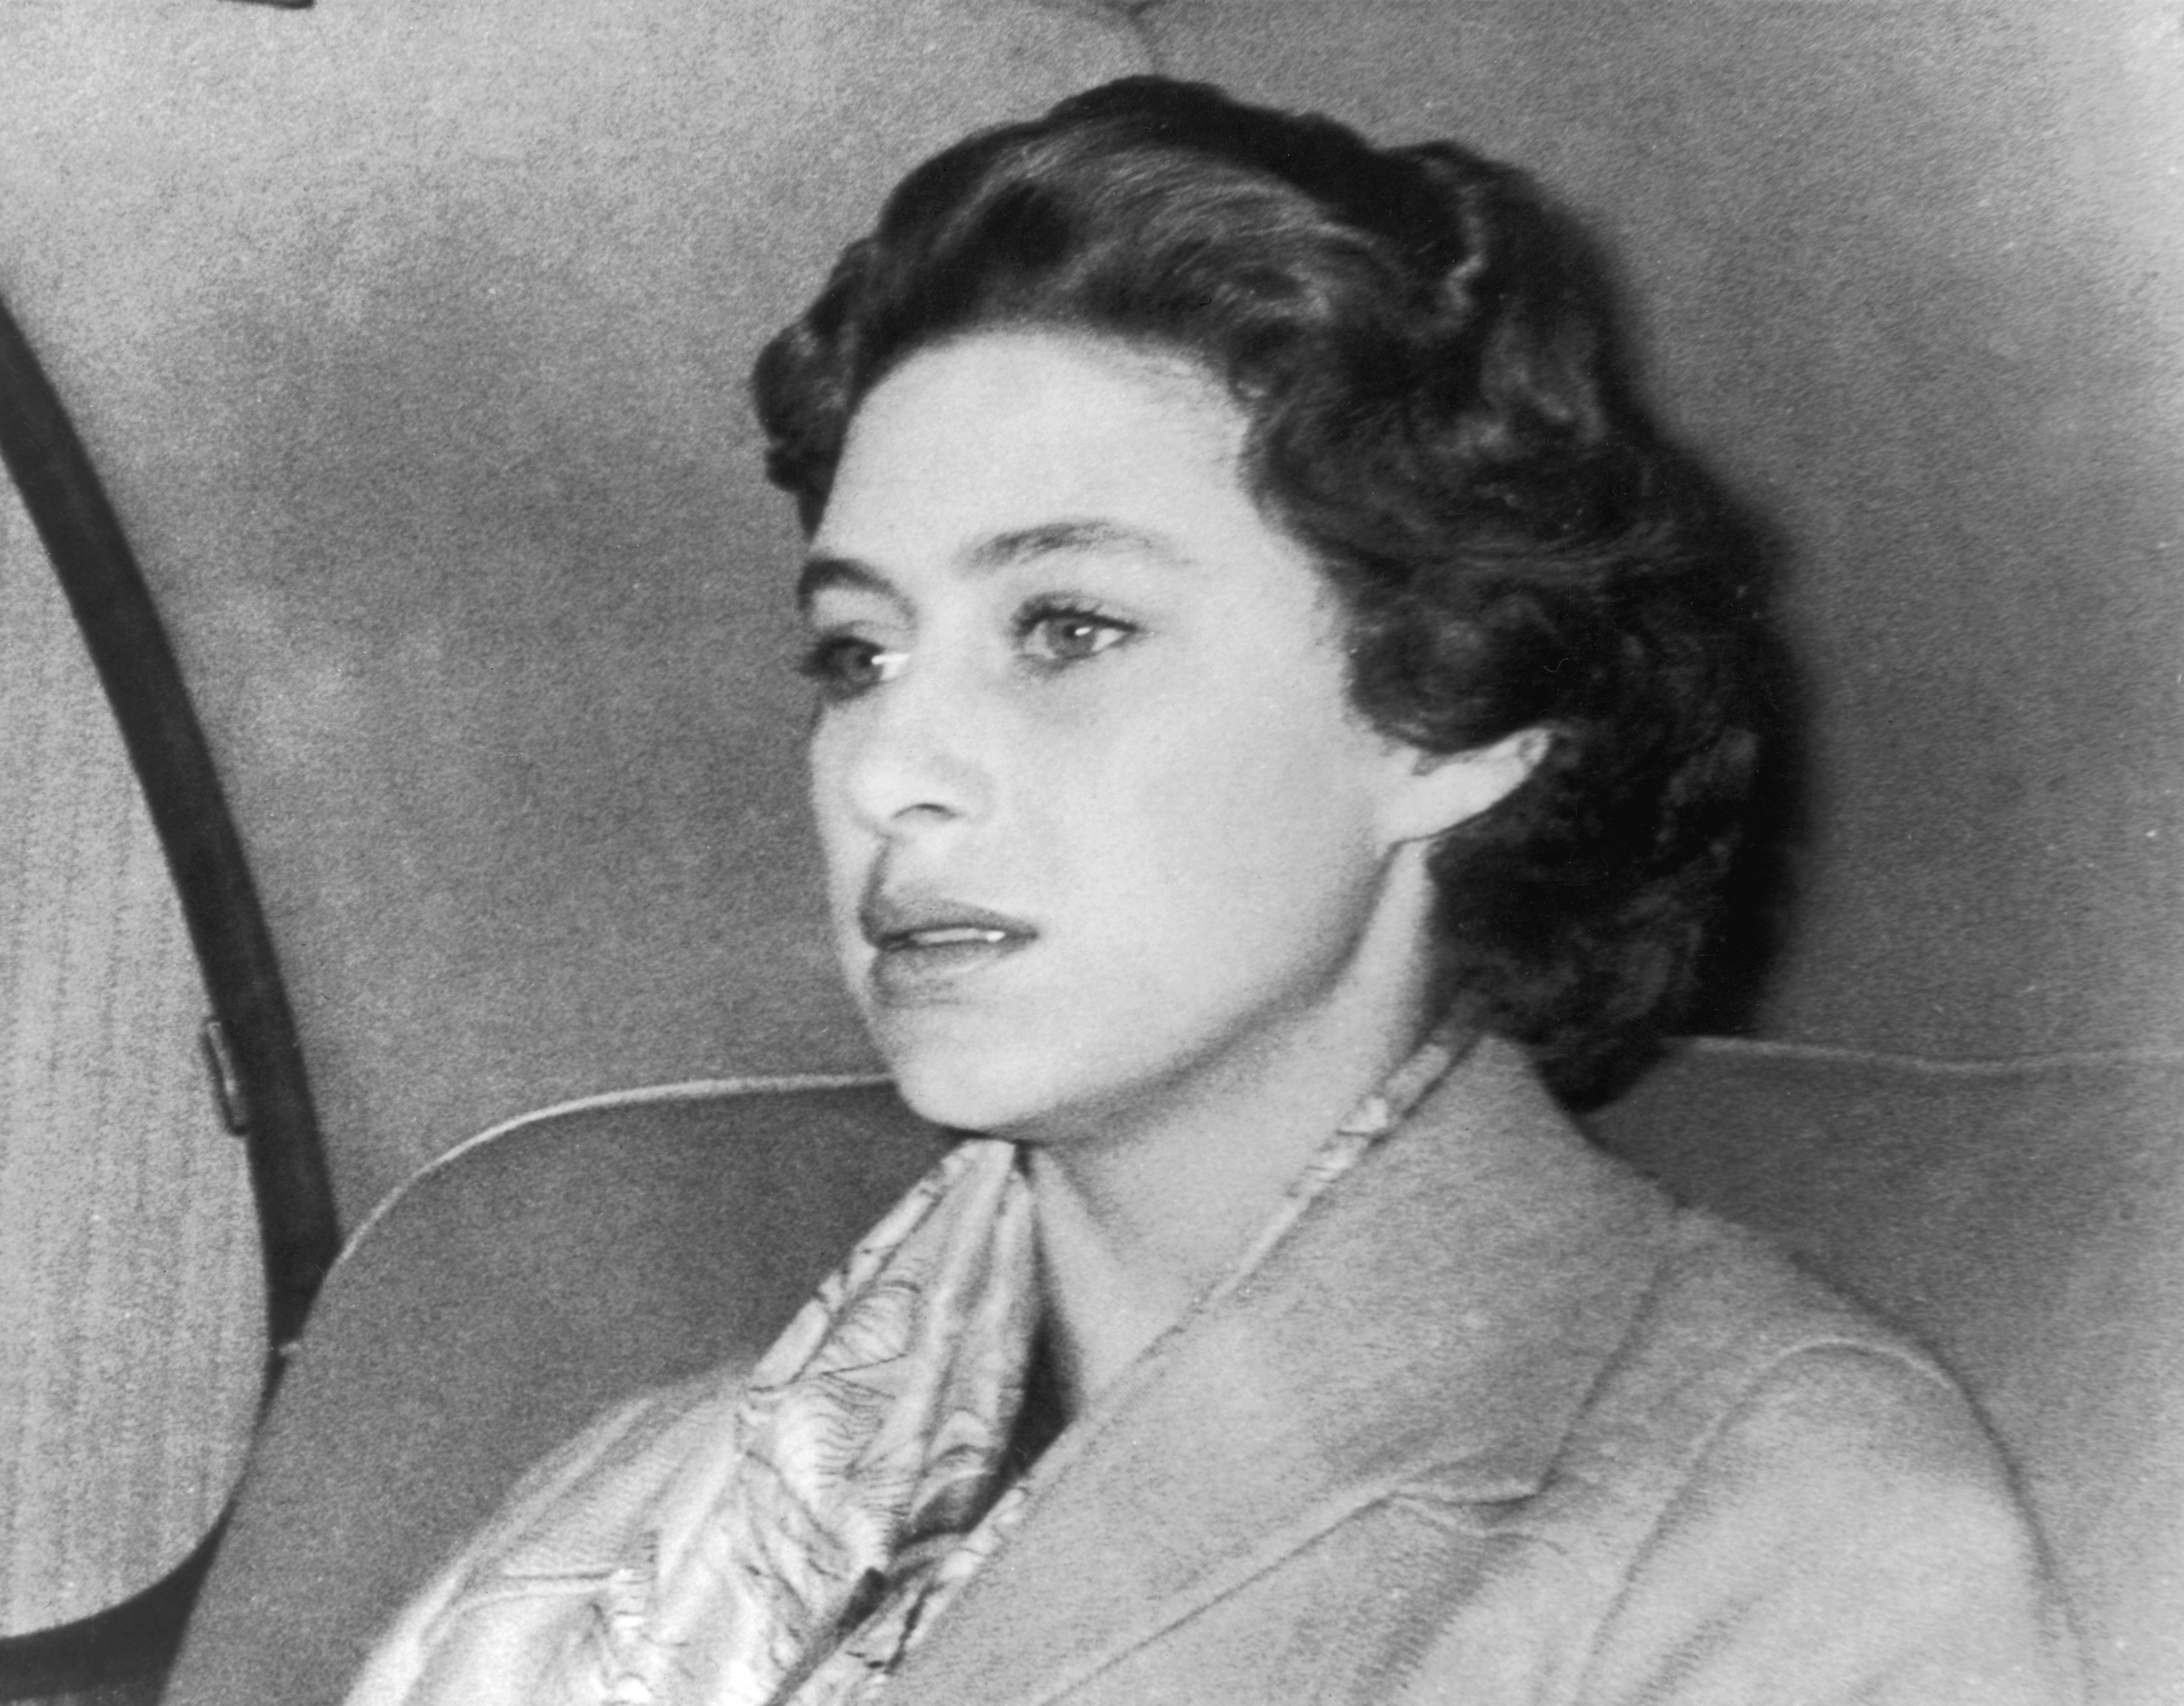 Did Princess Margaret Marry Peter Townsend